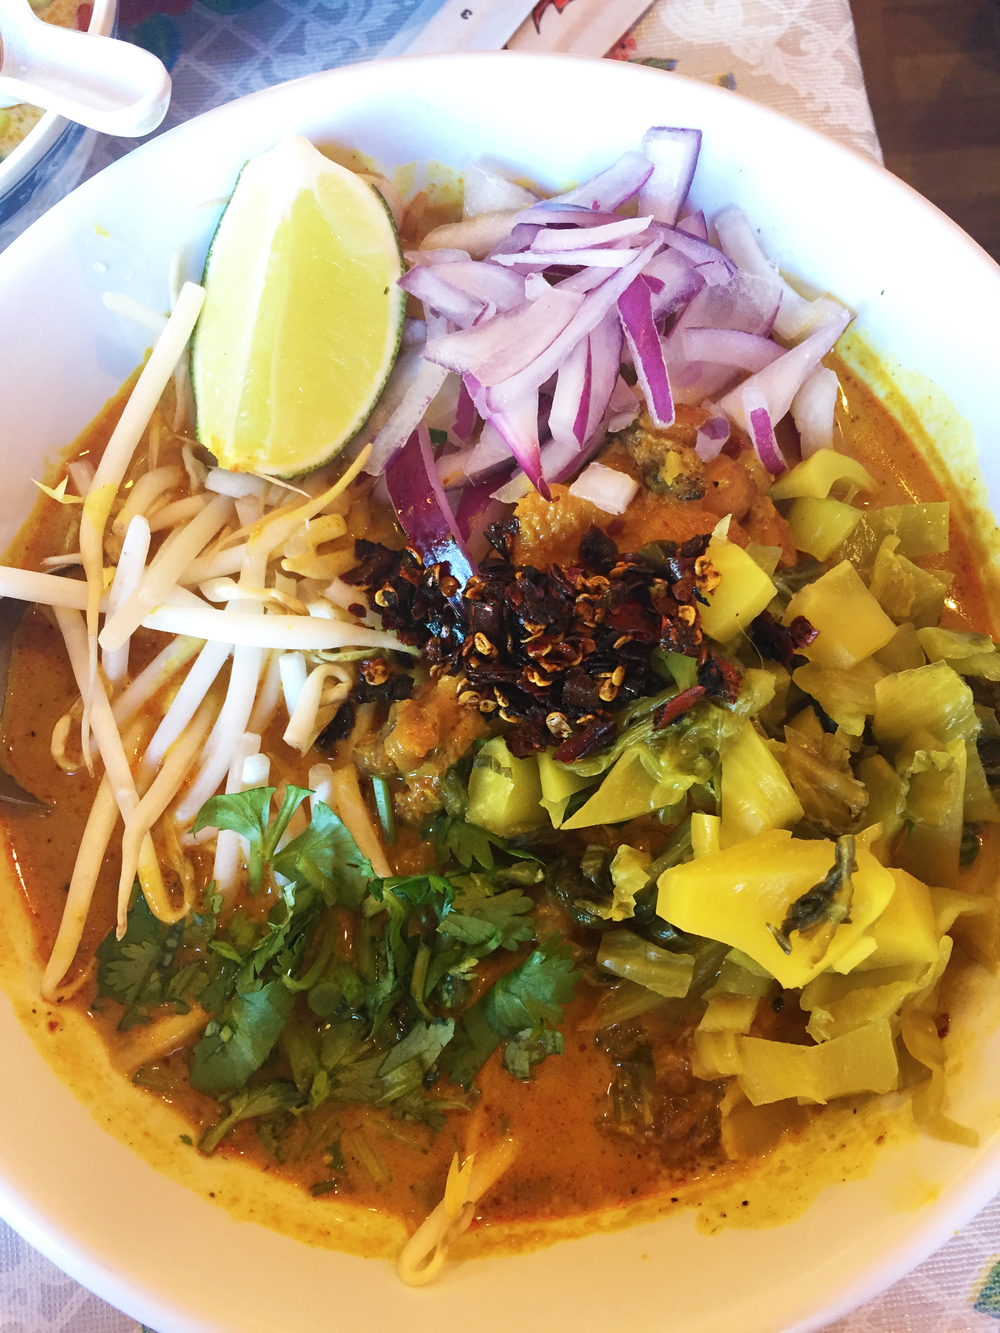 Khao Soi Gai - mae sai curried noodles with chicken and homemade nam prik khao soi, topped with bean sprouts, red onion, pickled mustard greens, cilantro, and chile jam.